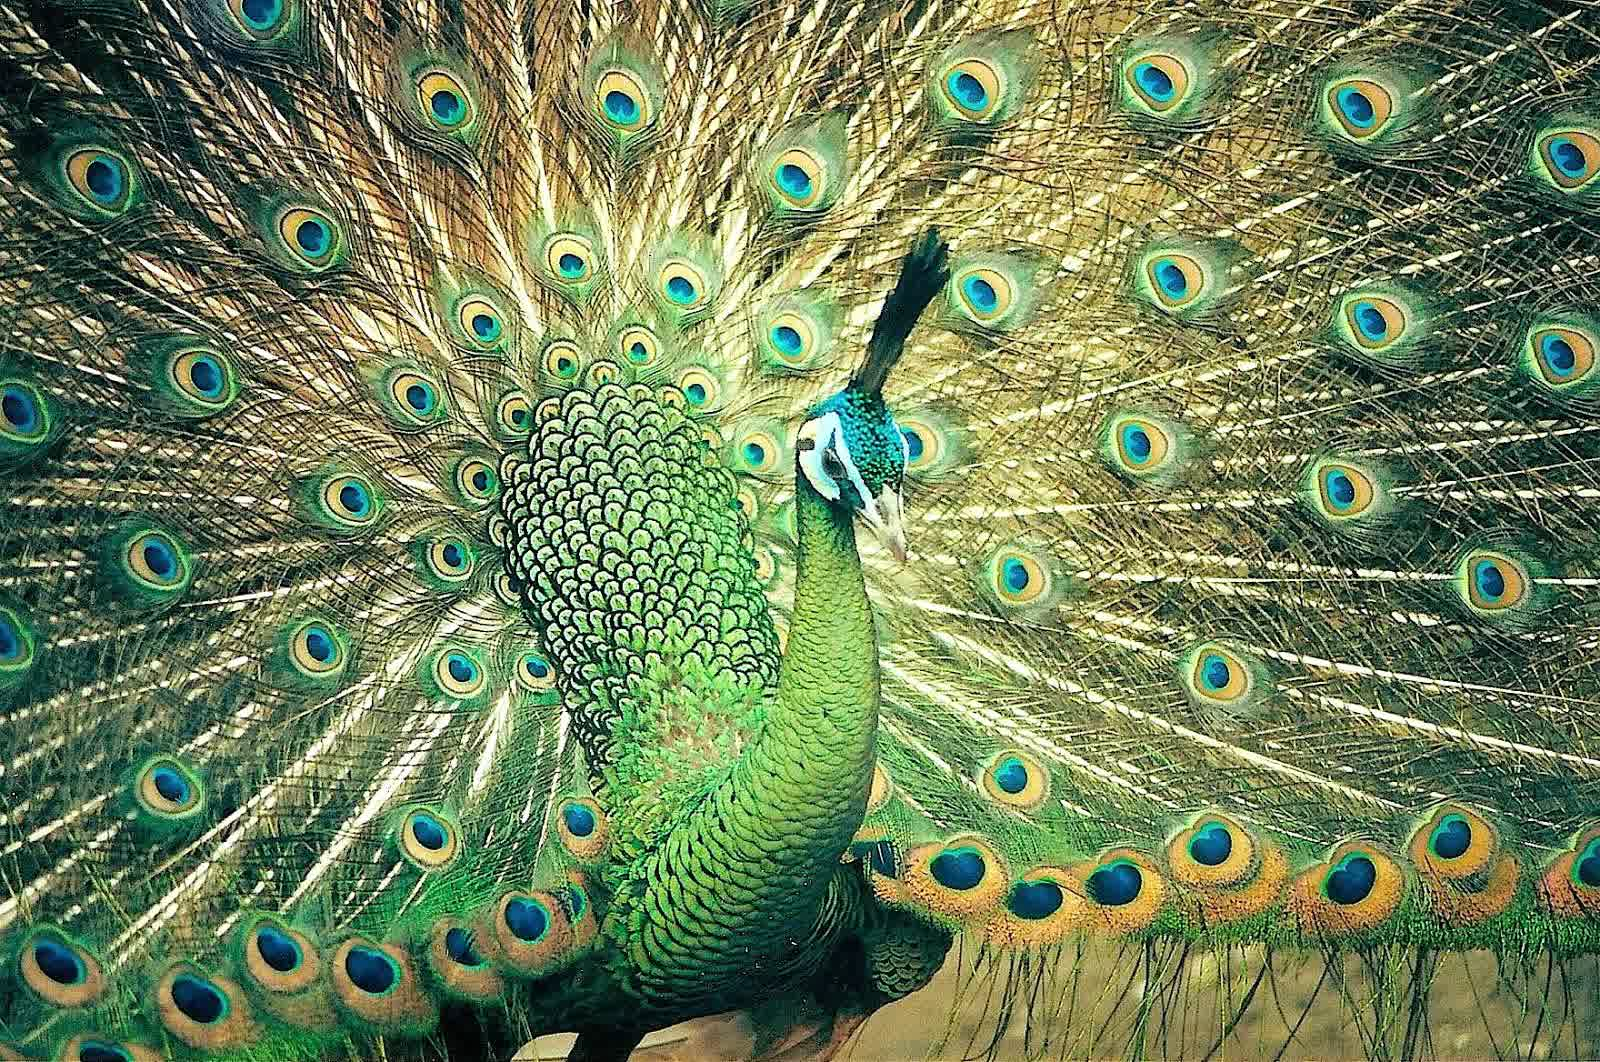 Peacock For Sale Is Waiting For You Jual Ayam Hias